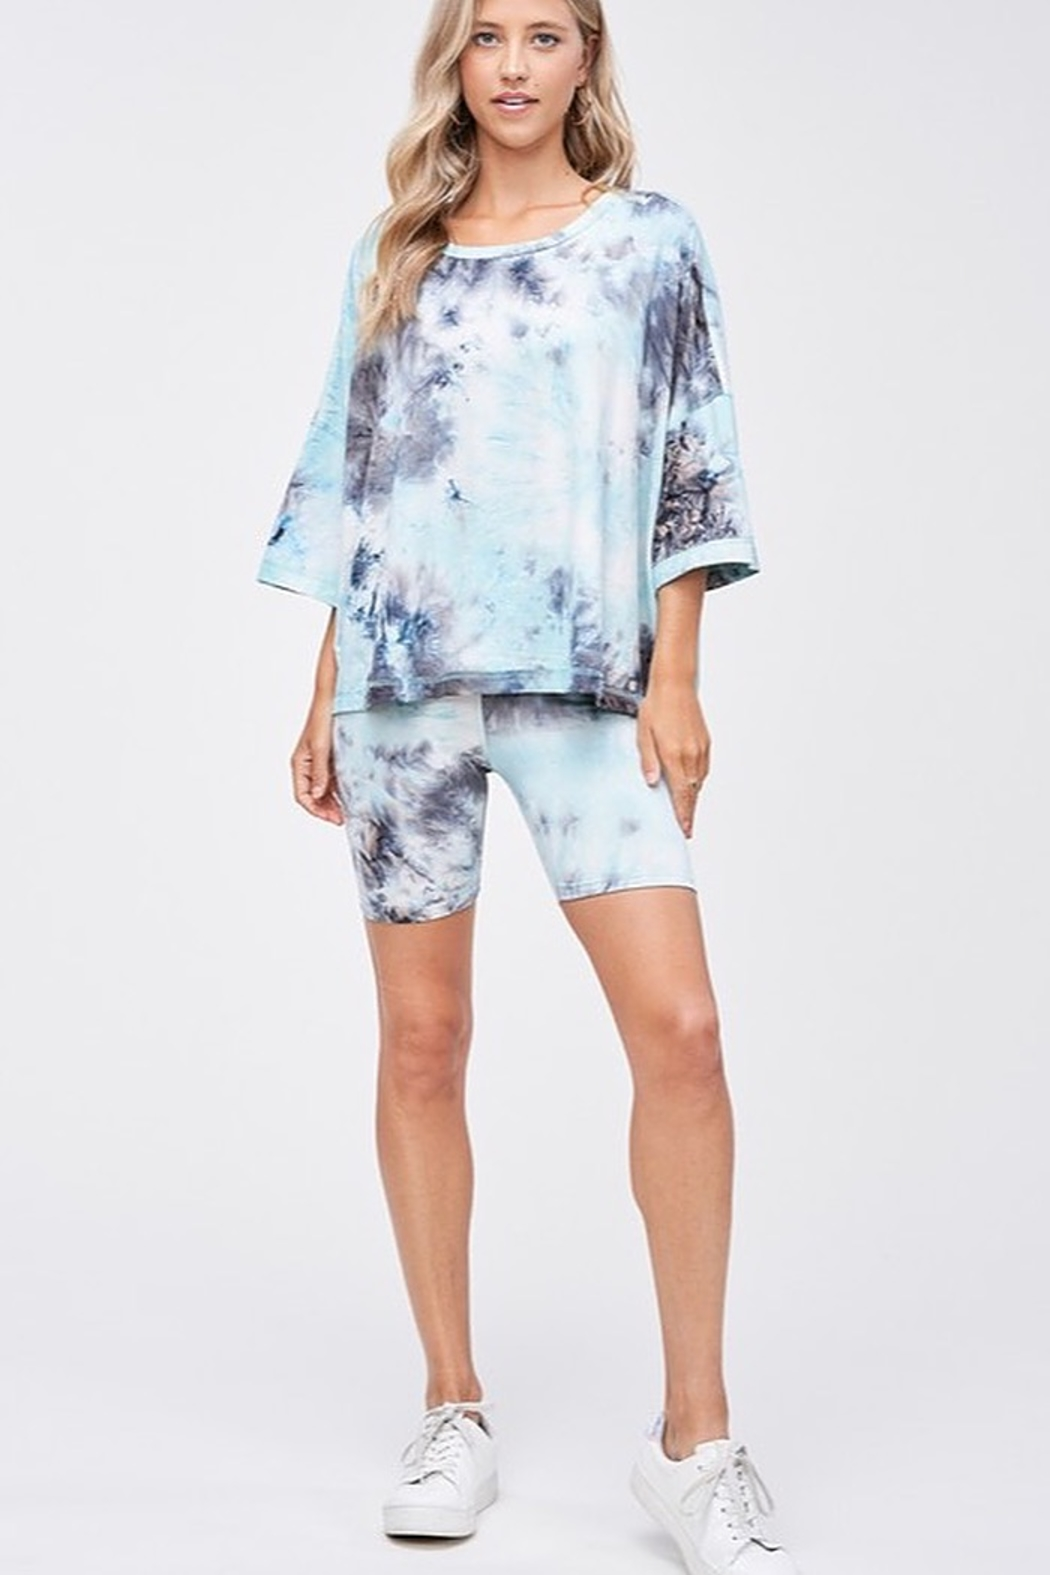 CRIV Sky High Tie Dye Top - Back Cropped Image